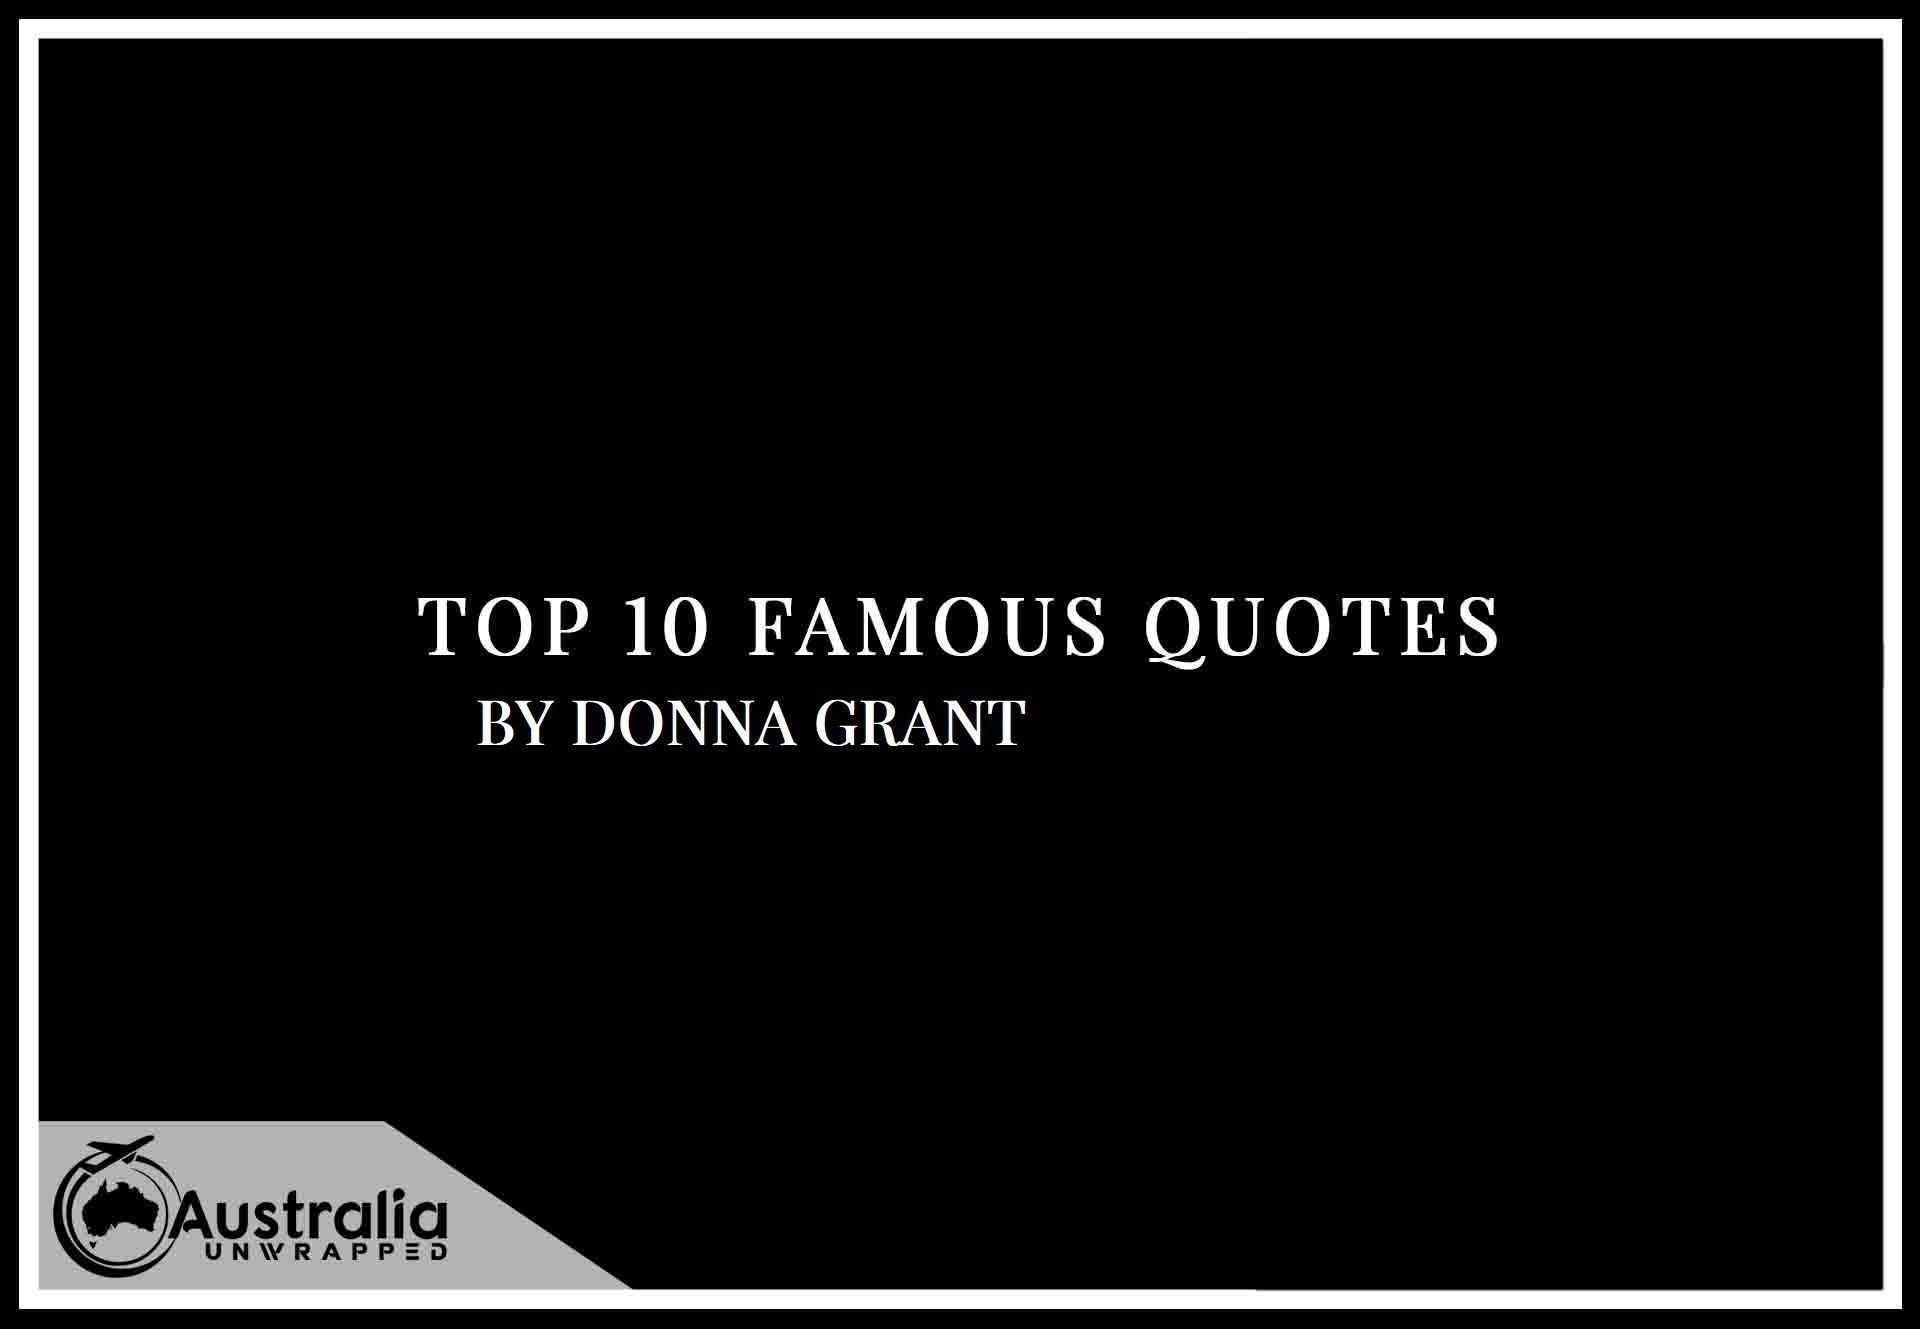 Top 10 Famous Quotes by Author Donna Grant